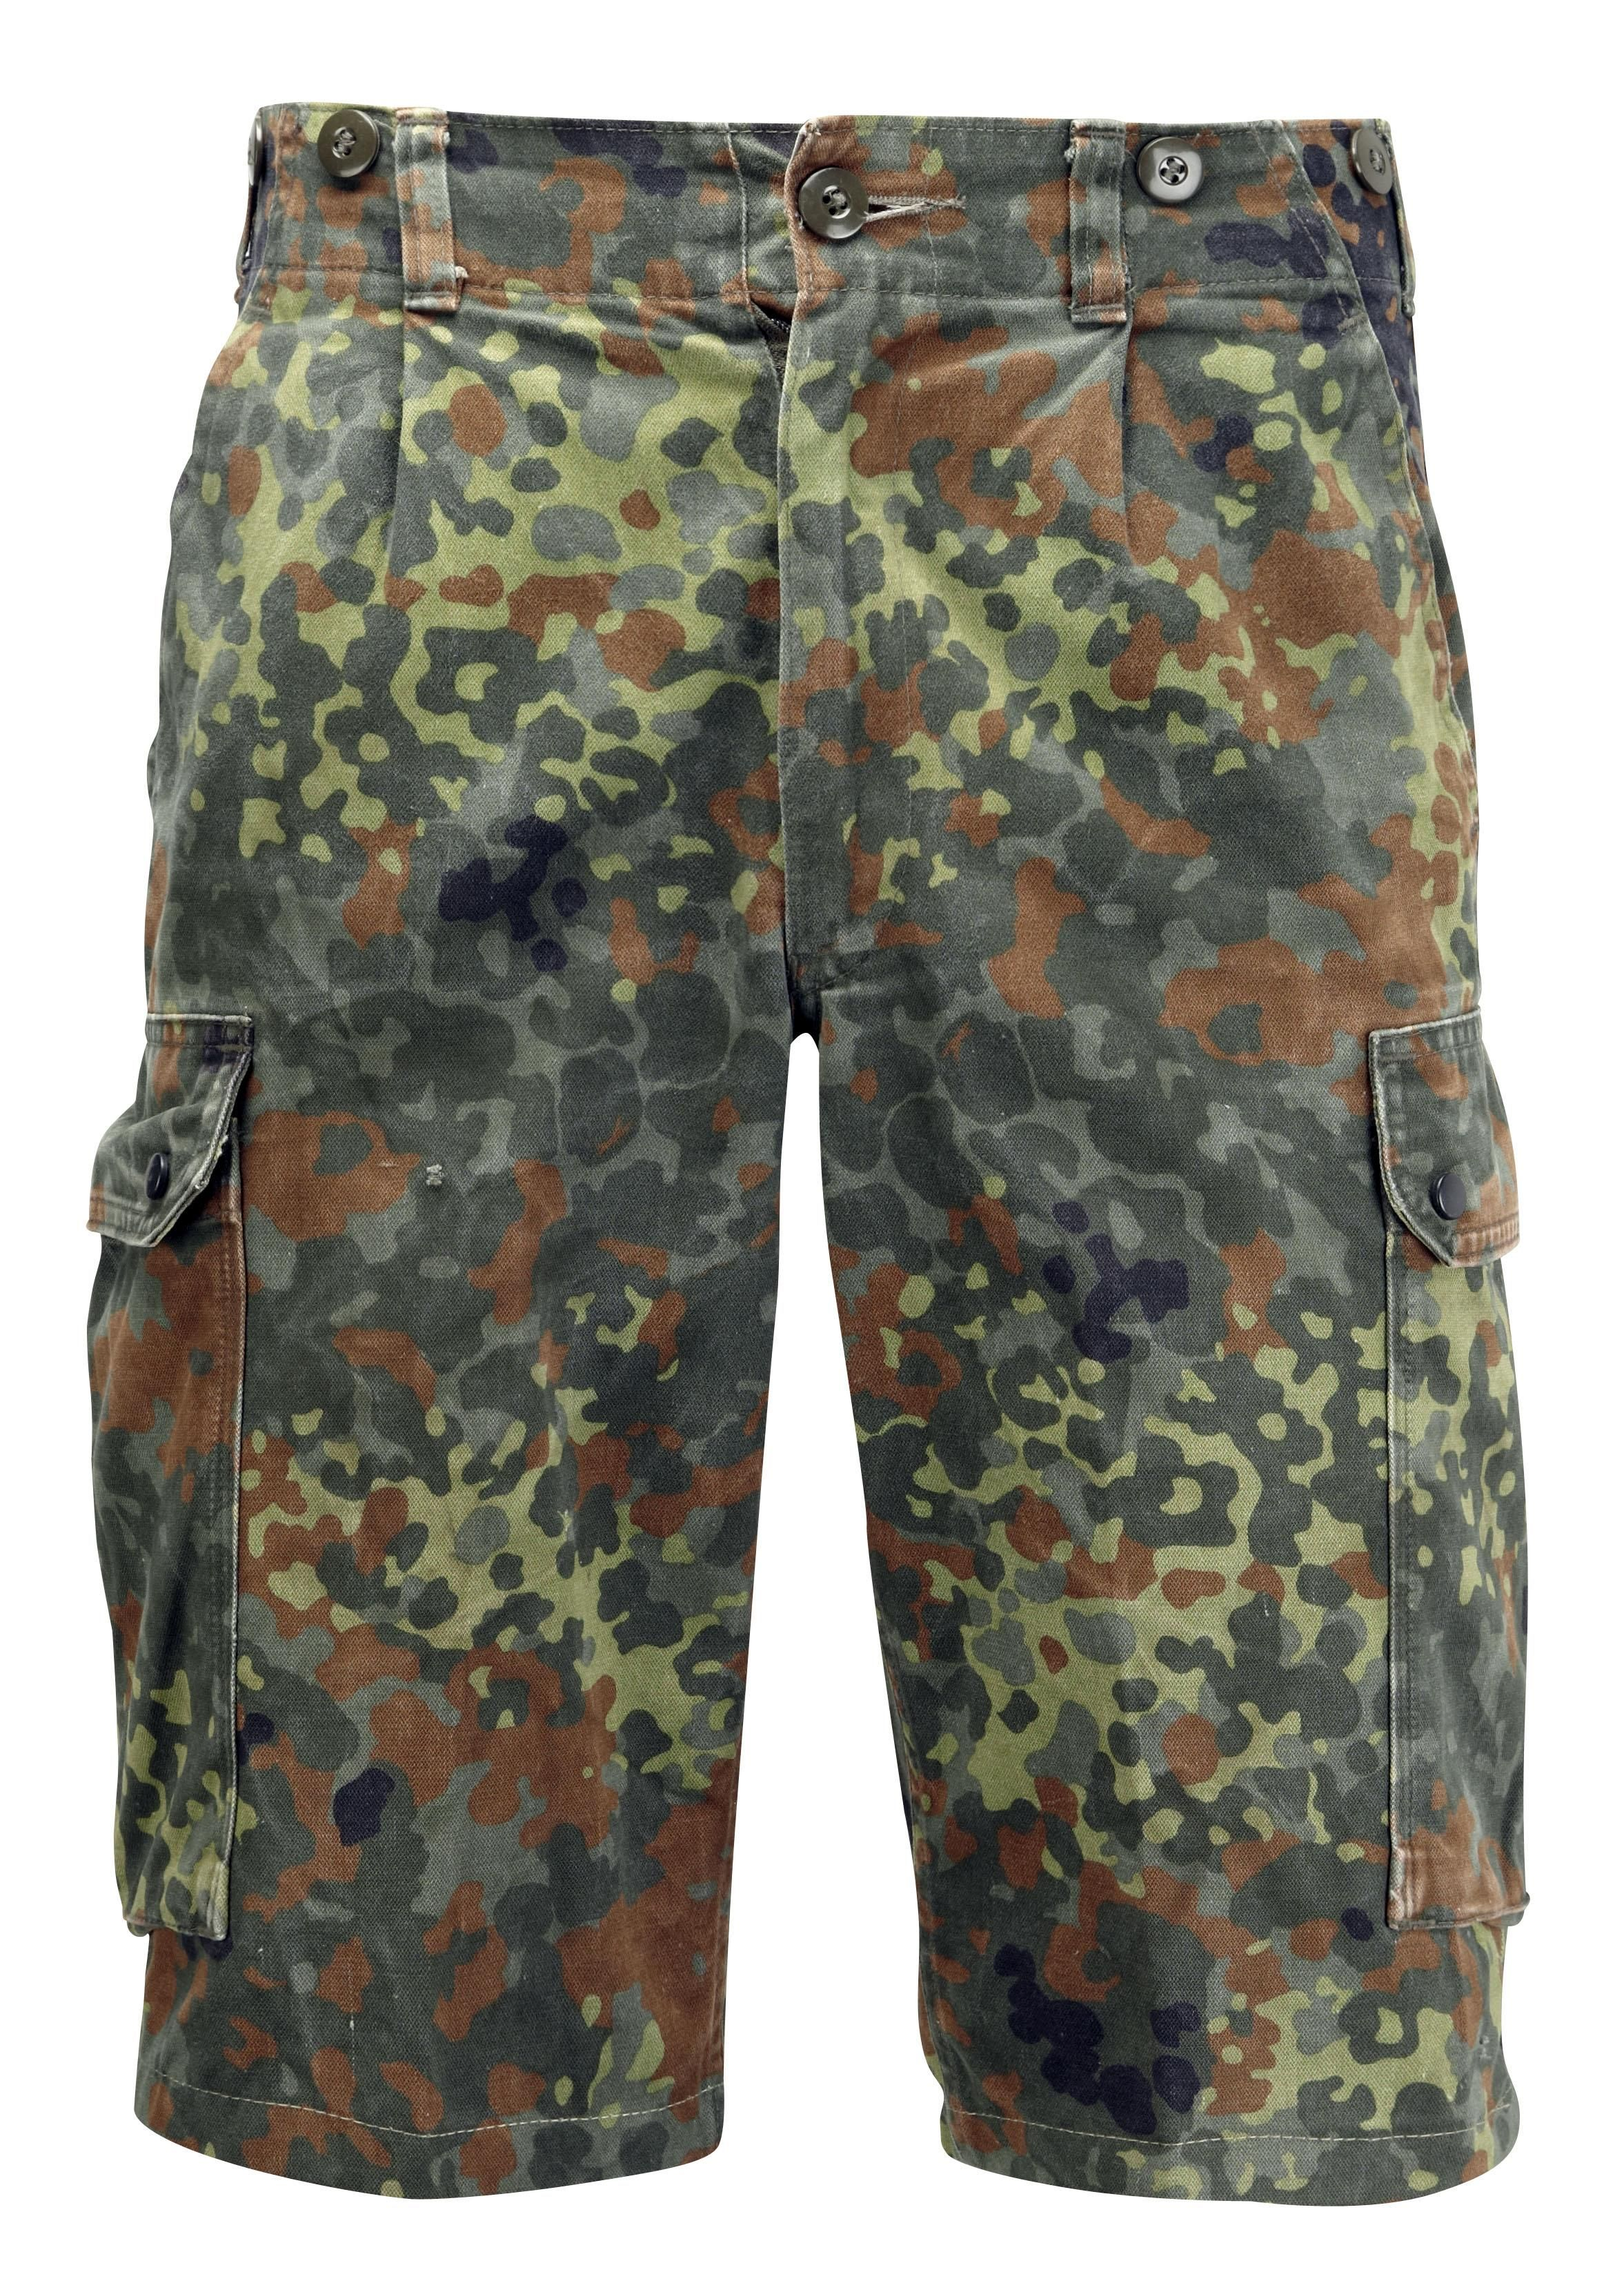 THE AUTHENTIC ARMY & OUTDOORS ONLINE UK STORE | Military